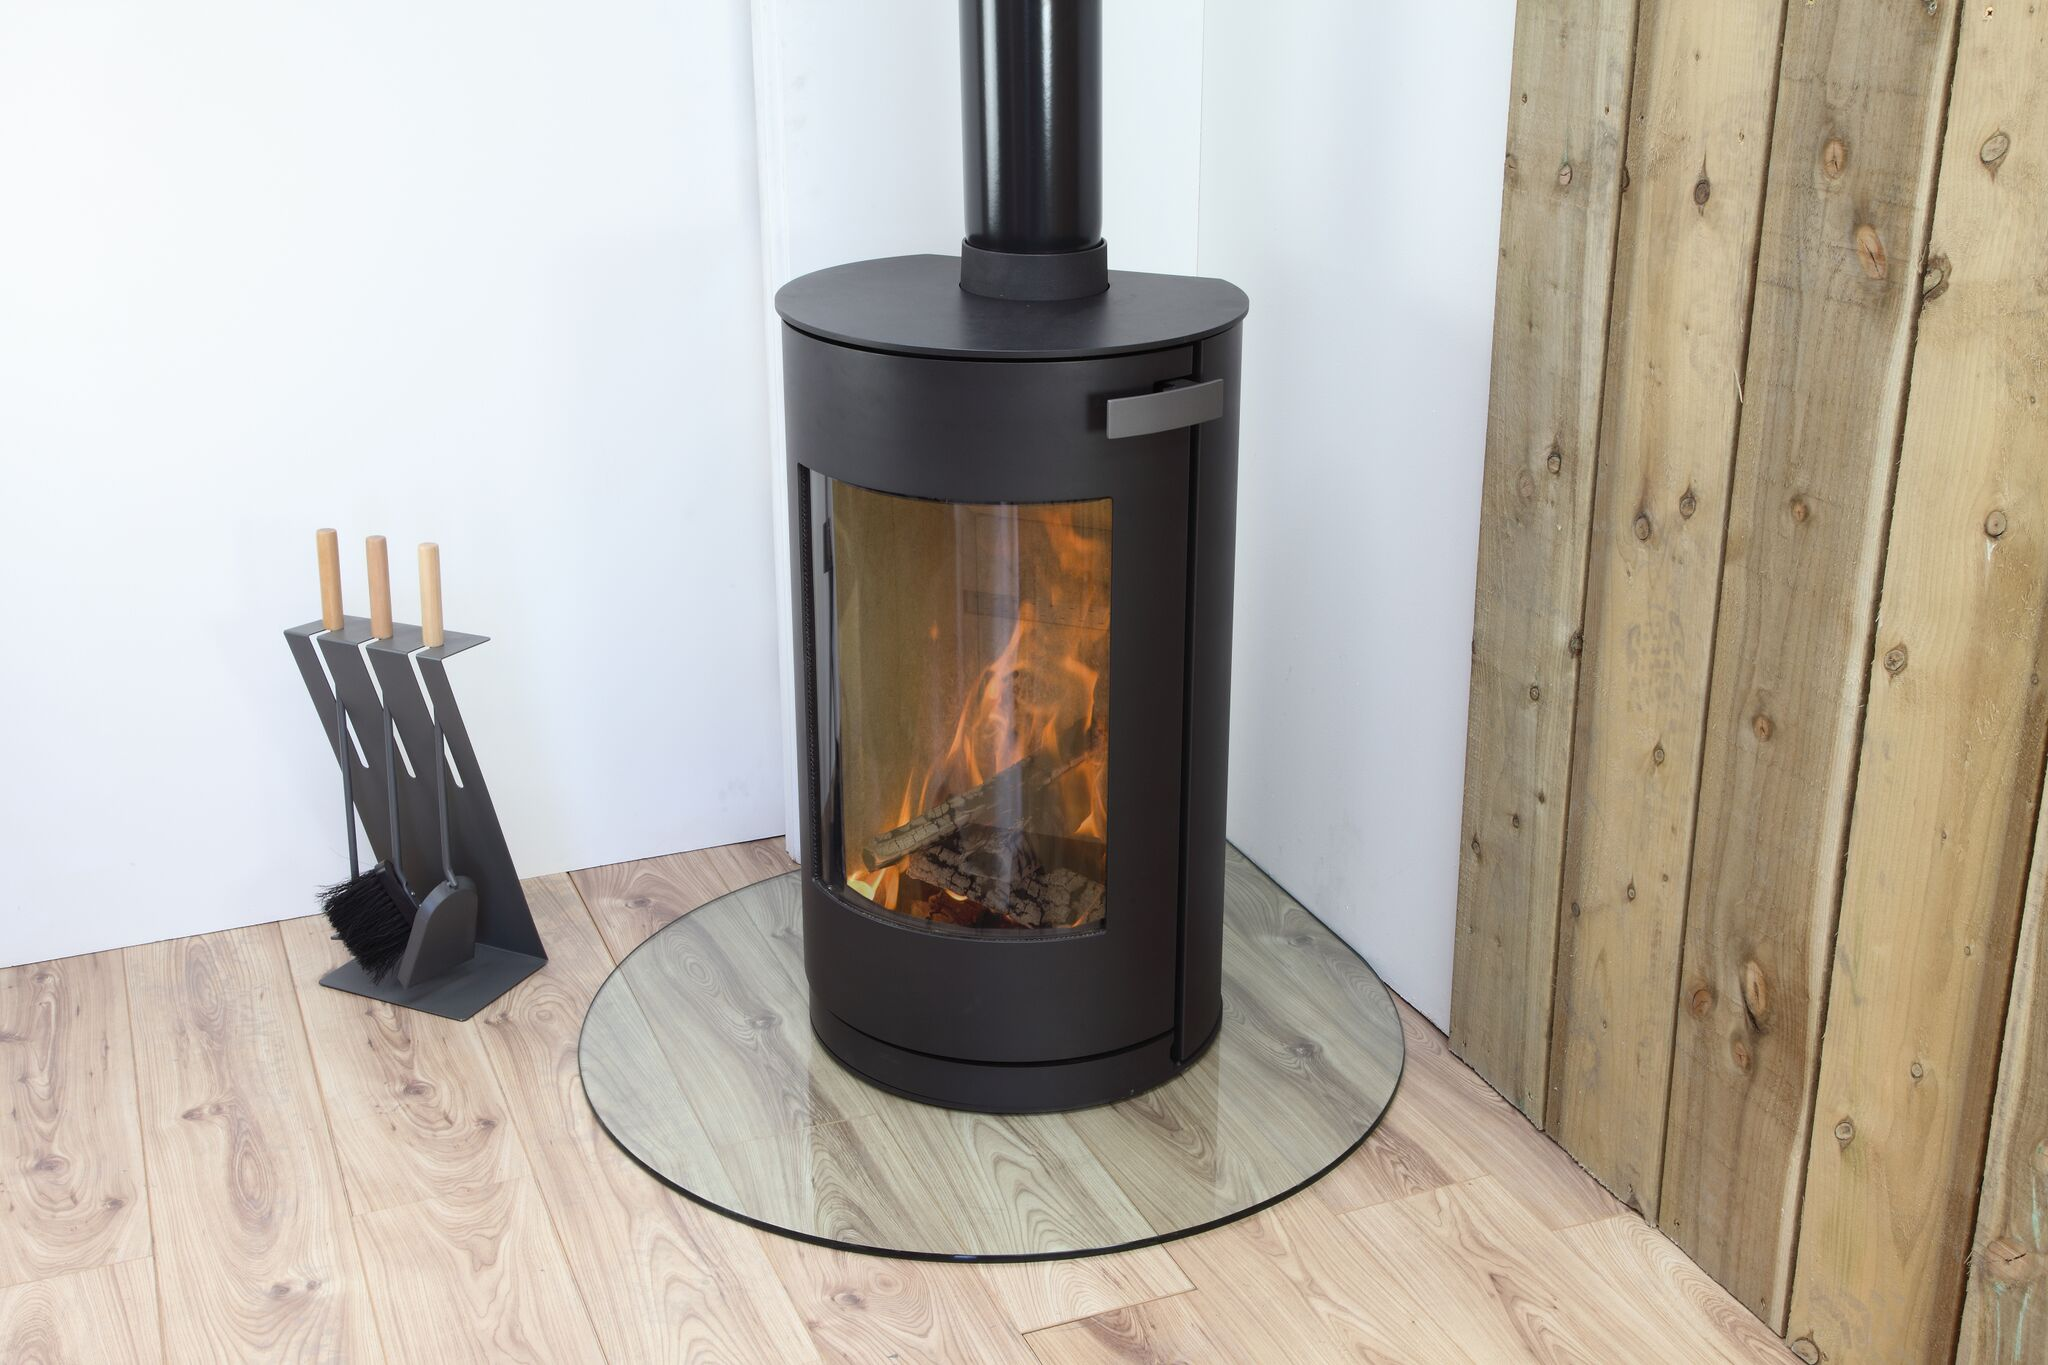 freestanding, granite hearth, slate hearth, woodburning, multifuel, Bangor, Newtownards, Belfast, Holywood, Conlig, Stove yard, Fireplaces, flue pipe, hearths, room heater, wilsons, Portaferry, Kircubbin, Greyabbey, riven slate, wooden beans, fireplace beams, fire chambers, open fires, logs, coal, grates, stove glass, grate bars, ards fireplaces, Jubilee Road, Helensbay, Crawfordsburn, flexi flue, chimney cowls, down draught cowls, gas, natural gas, reflex 75T, log effect fire, Gazco, stovax, medip, arada, varde, Henley, hunter, yeoman, glass hearths,